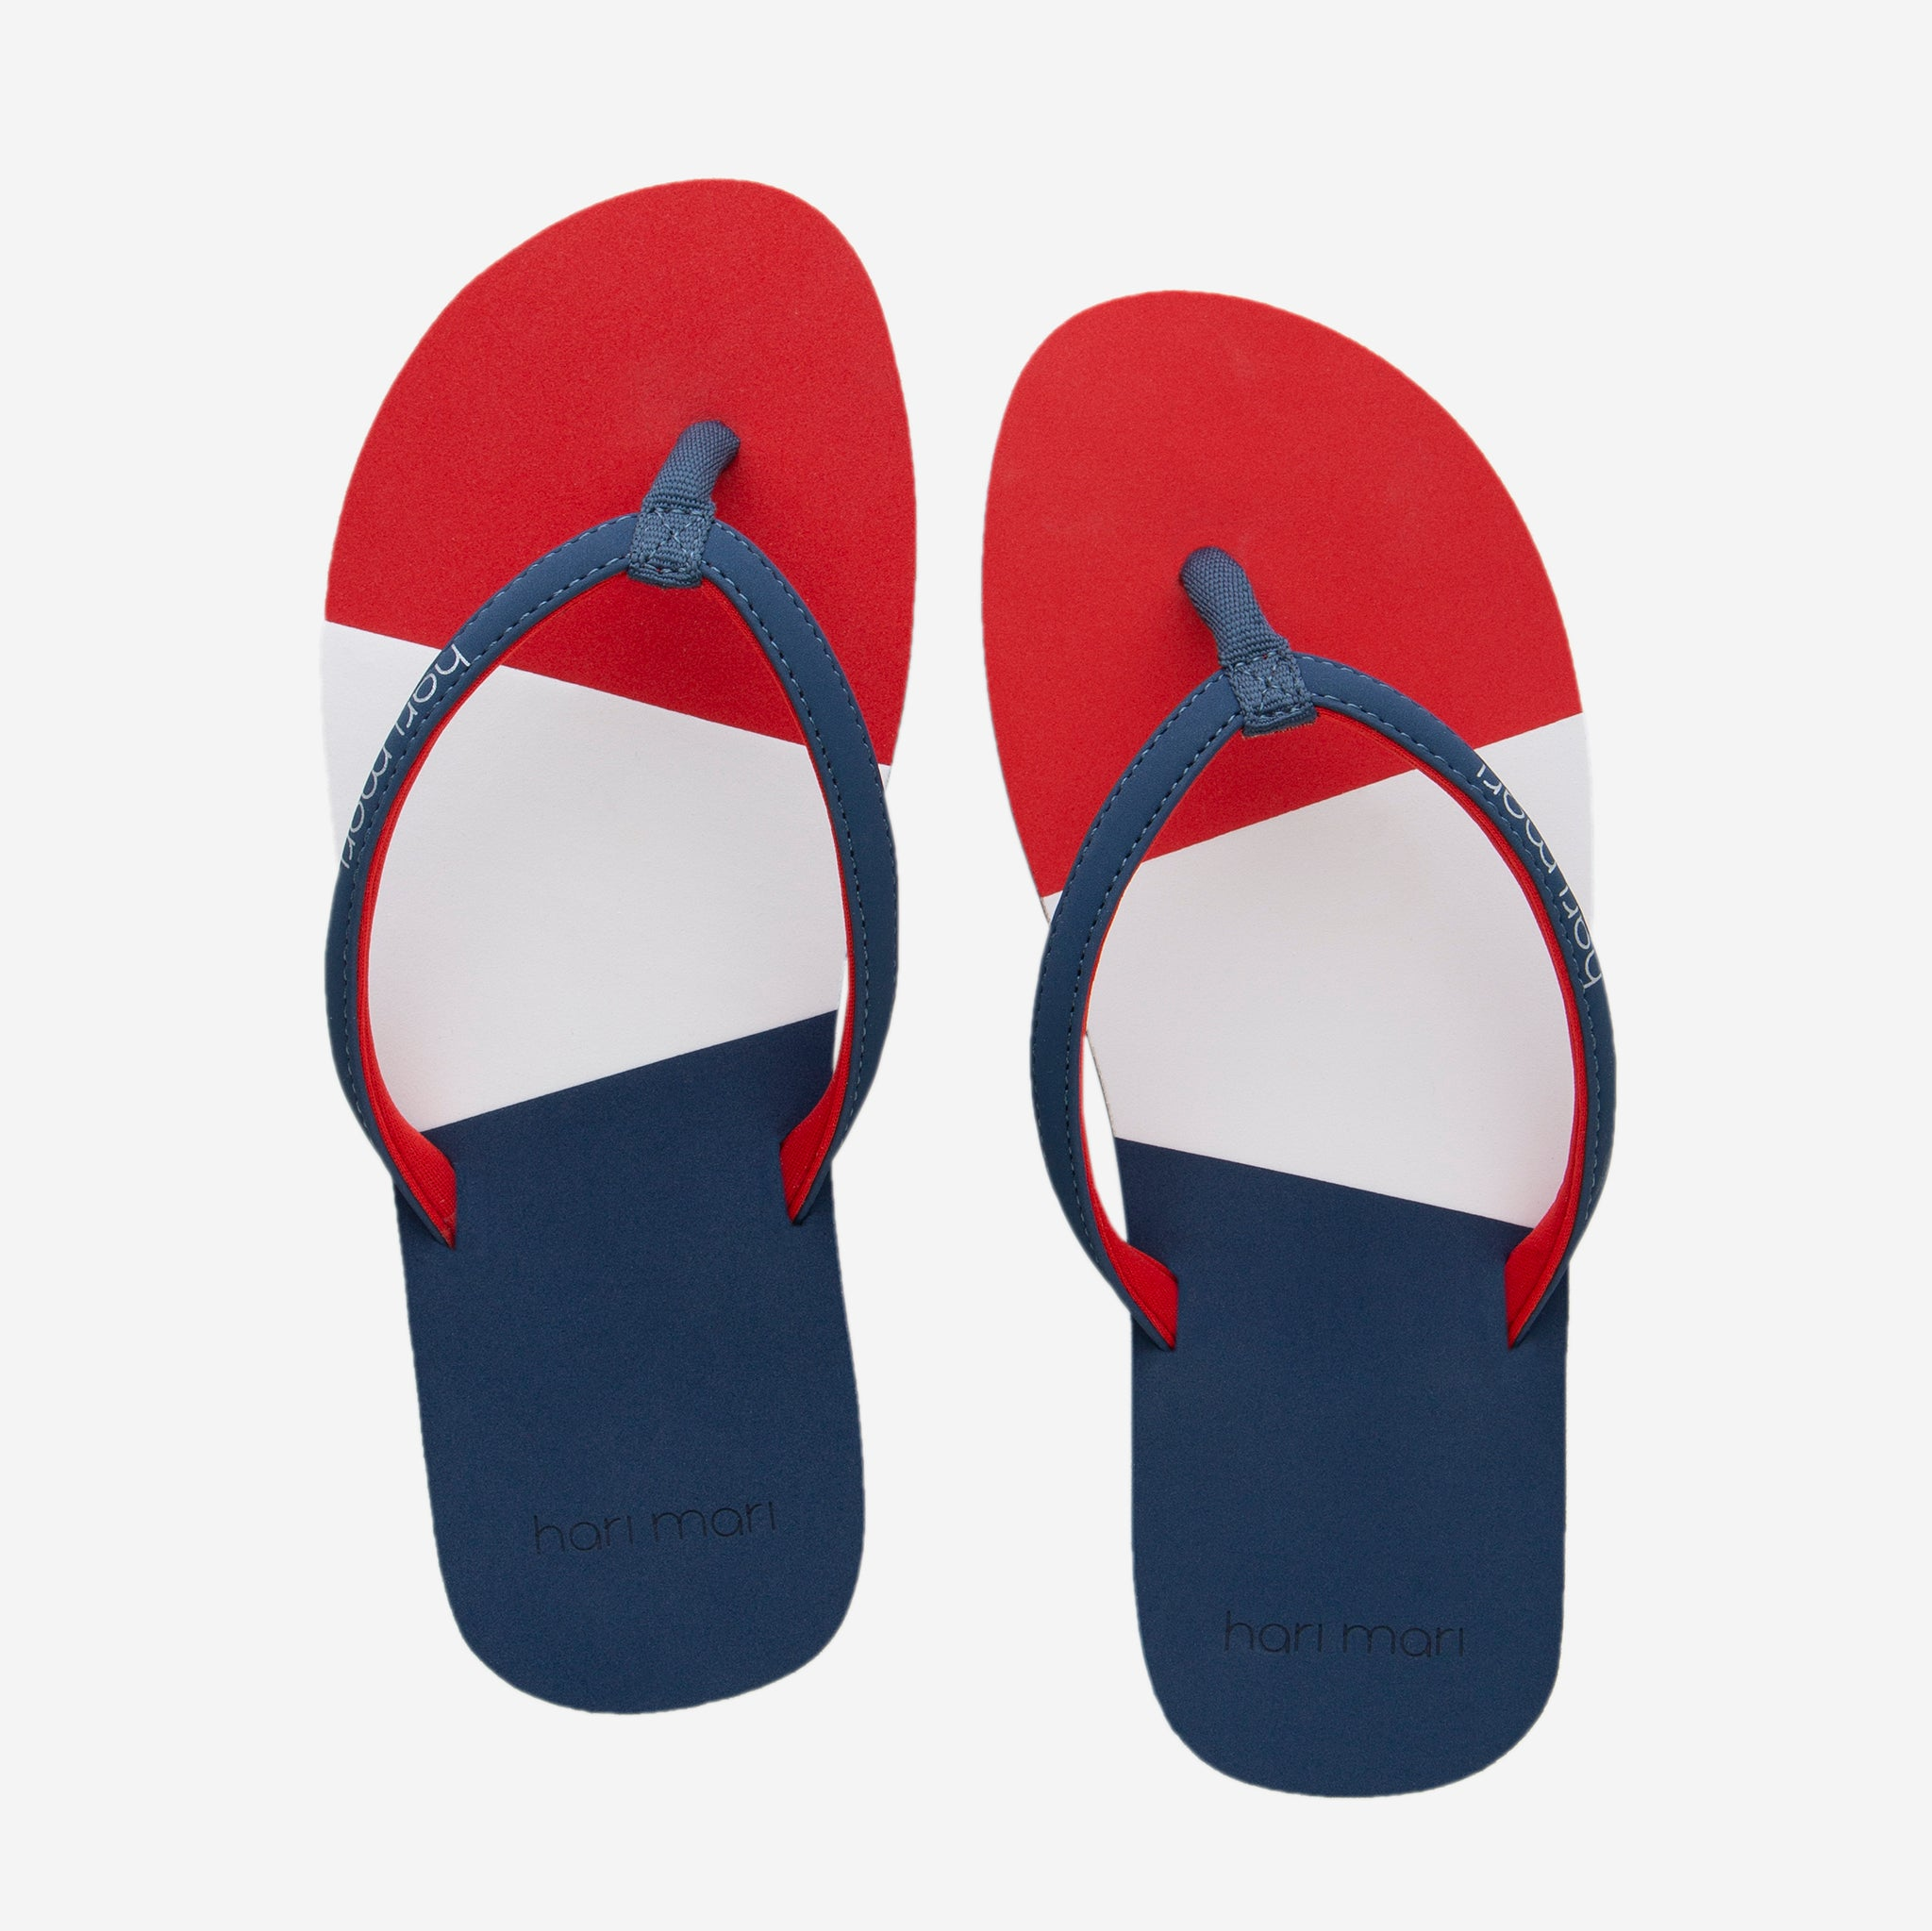 Hari Mari Meadows Asana Youth Flip Flops in red white and navy on white background